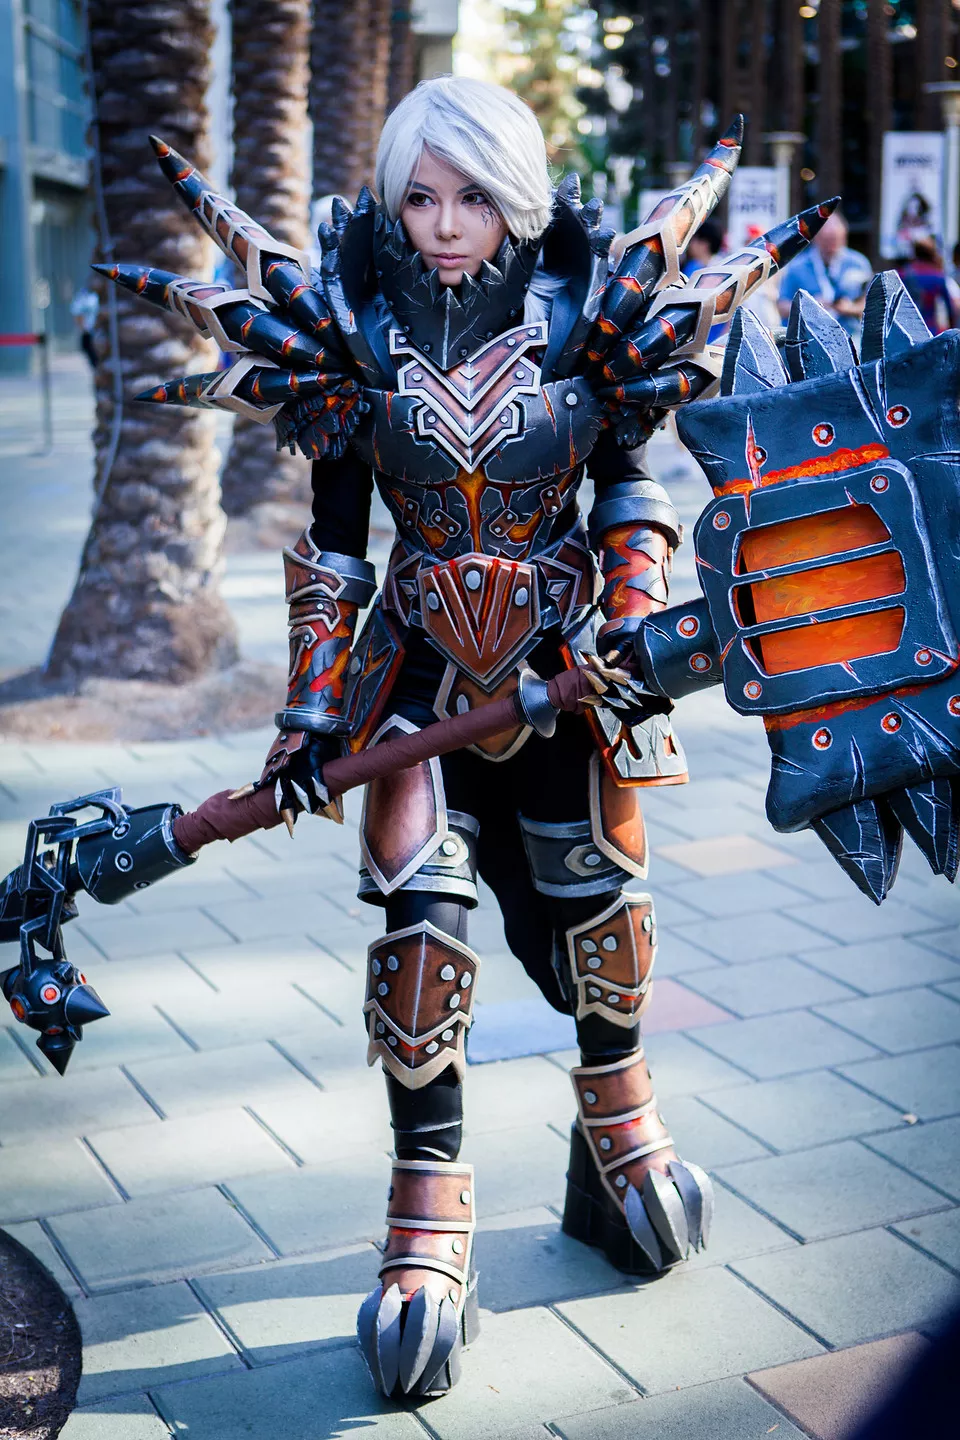 This WoW cosplay is absolutely crazy (Tier 13 Warrior Armor by ...